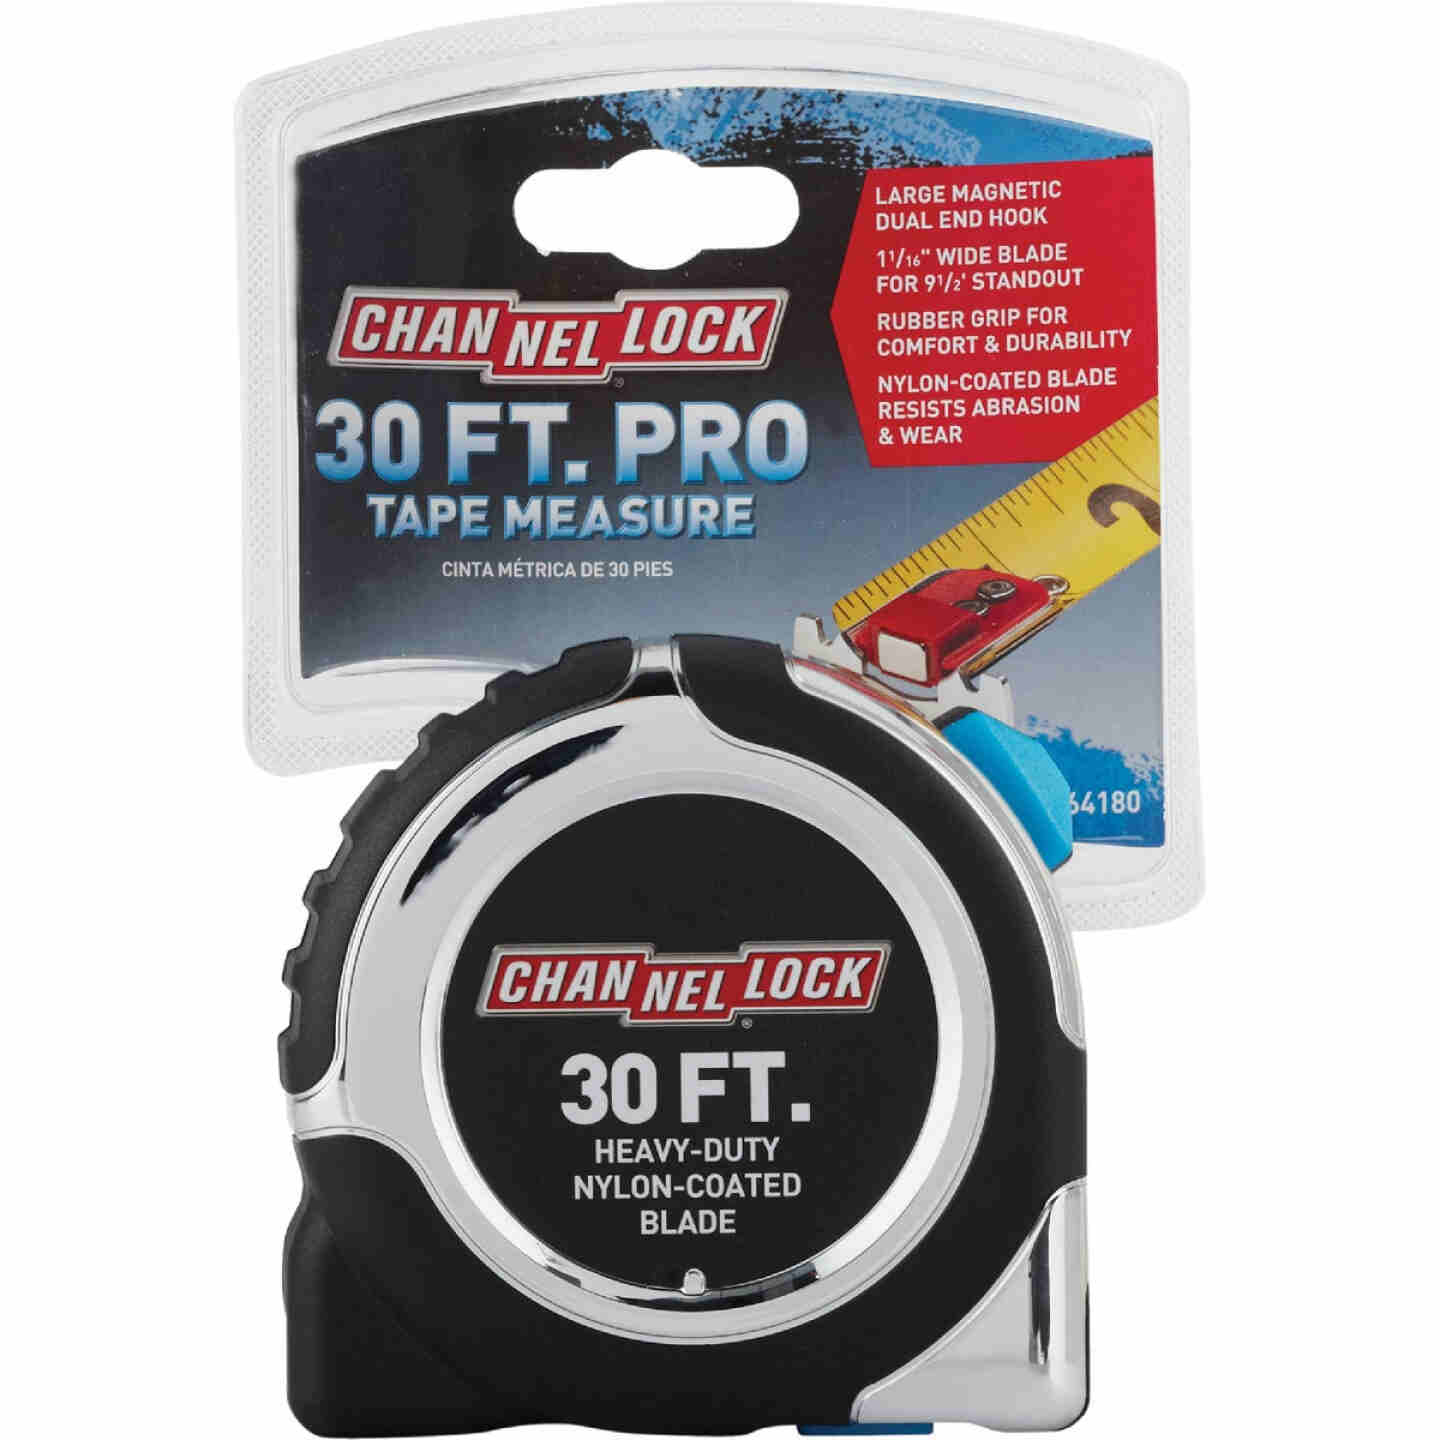 Channellock 30 Ft. Professional Tape Measure Image 2